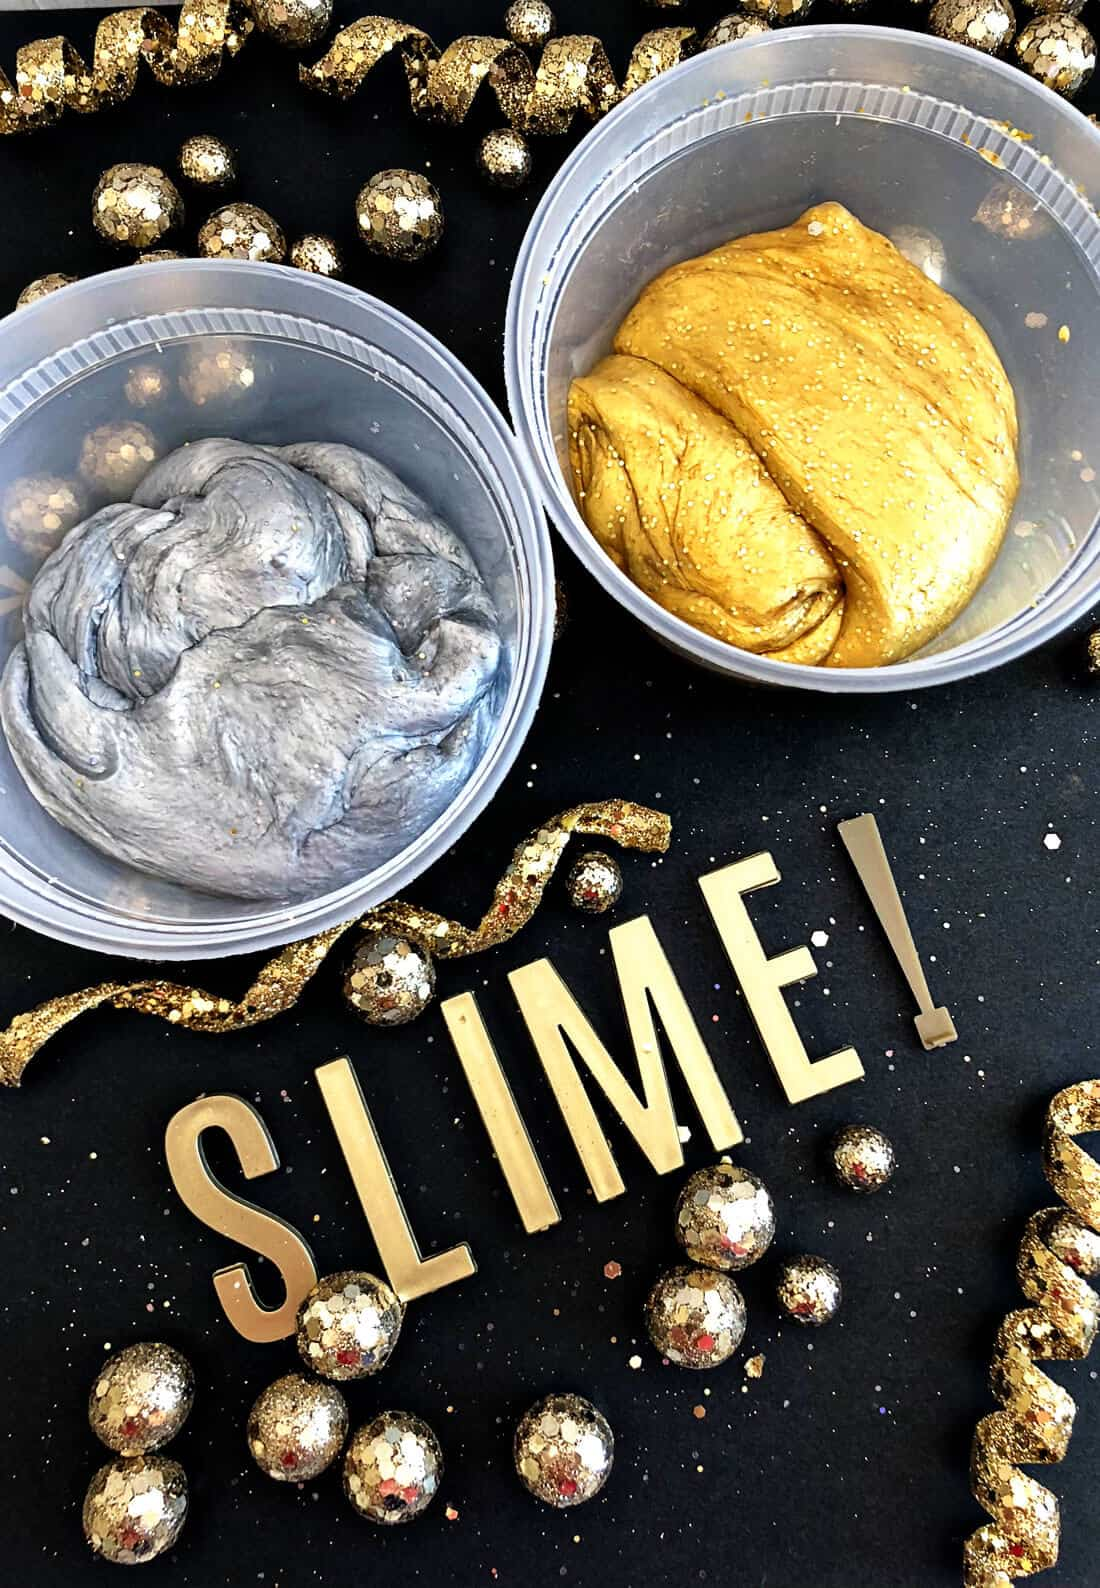 Party slime diy